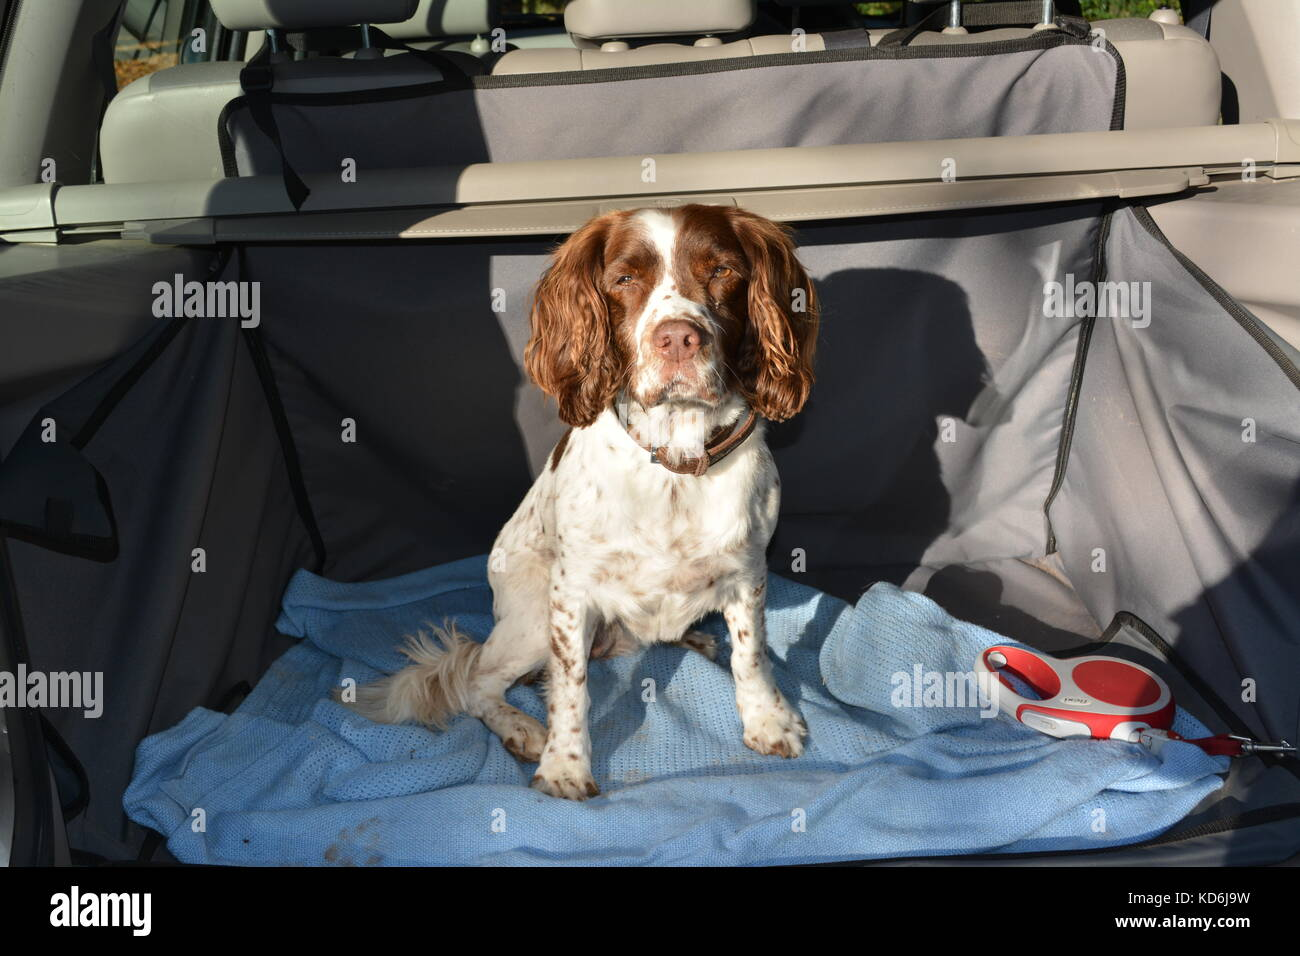 English Springer Spaniel dog sitting in back of Land Rover SUV 4x4 vehicle car on blanket and waterproof boot lining - Stock Image